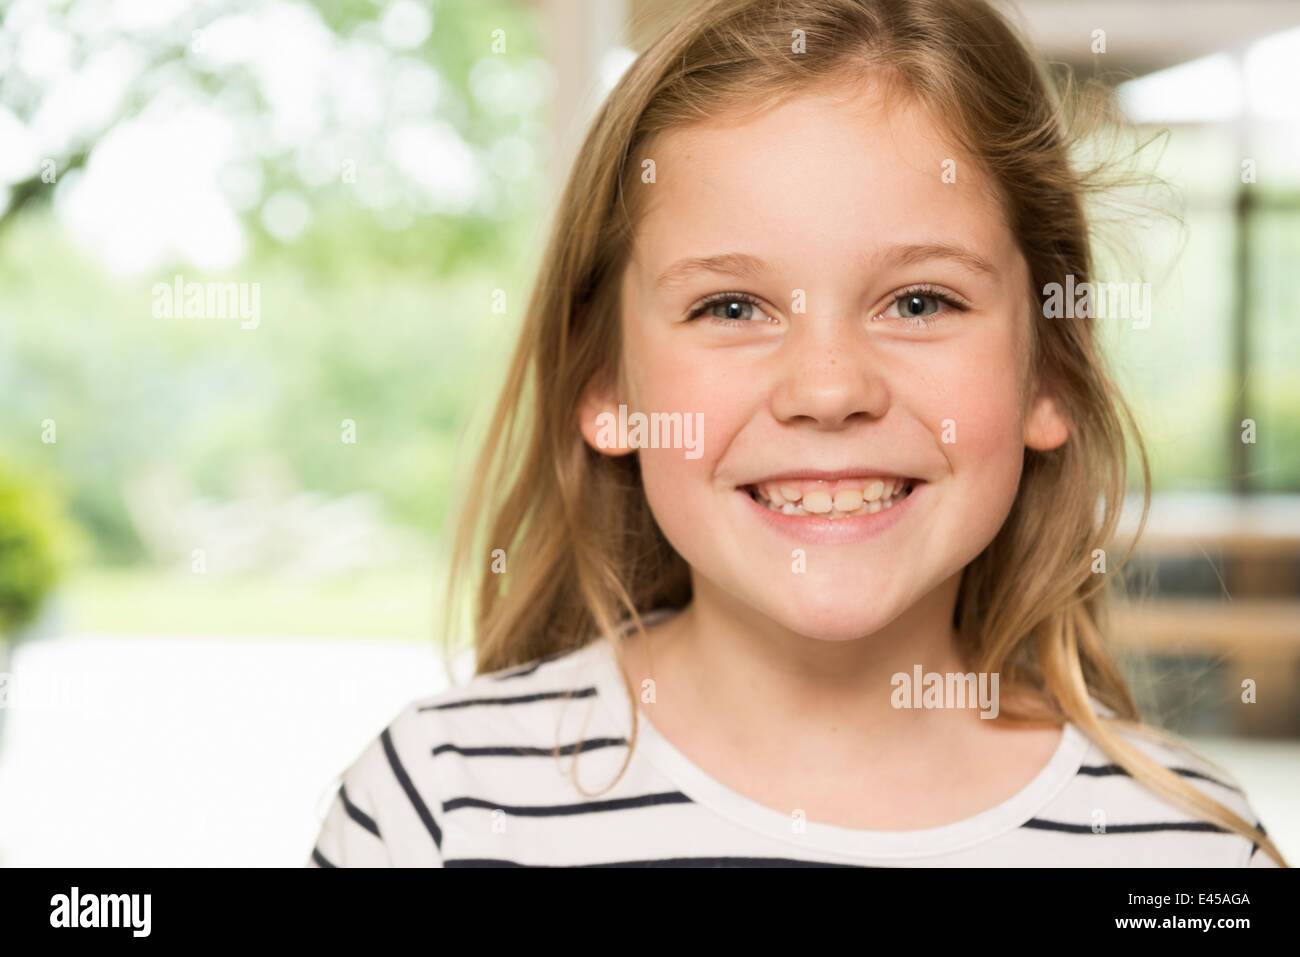 Fille avec grand sourire Photo Stock